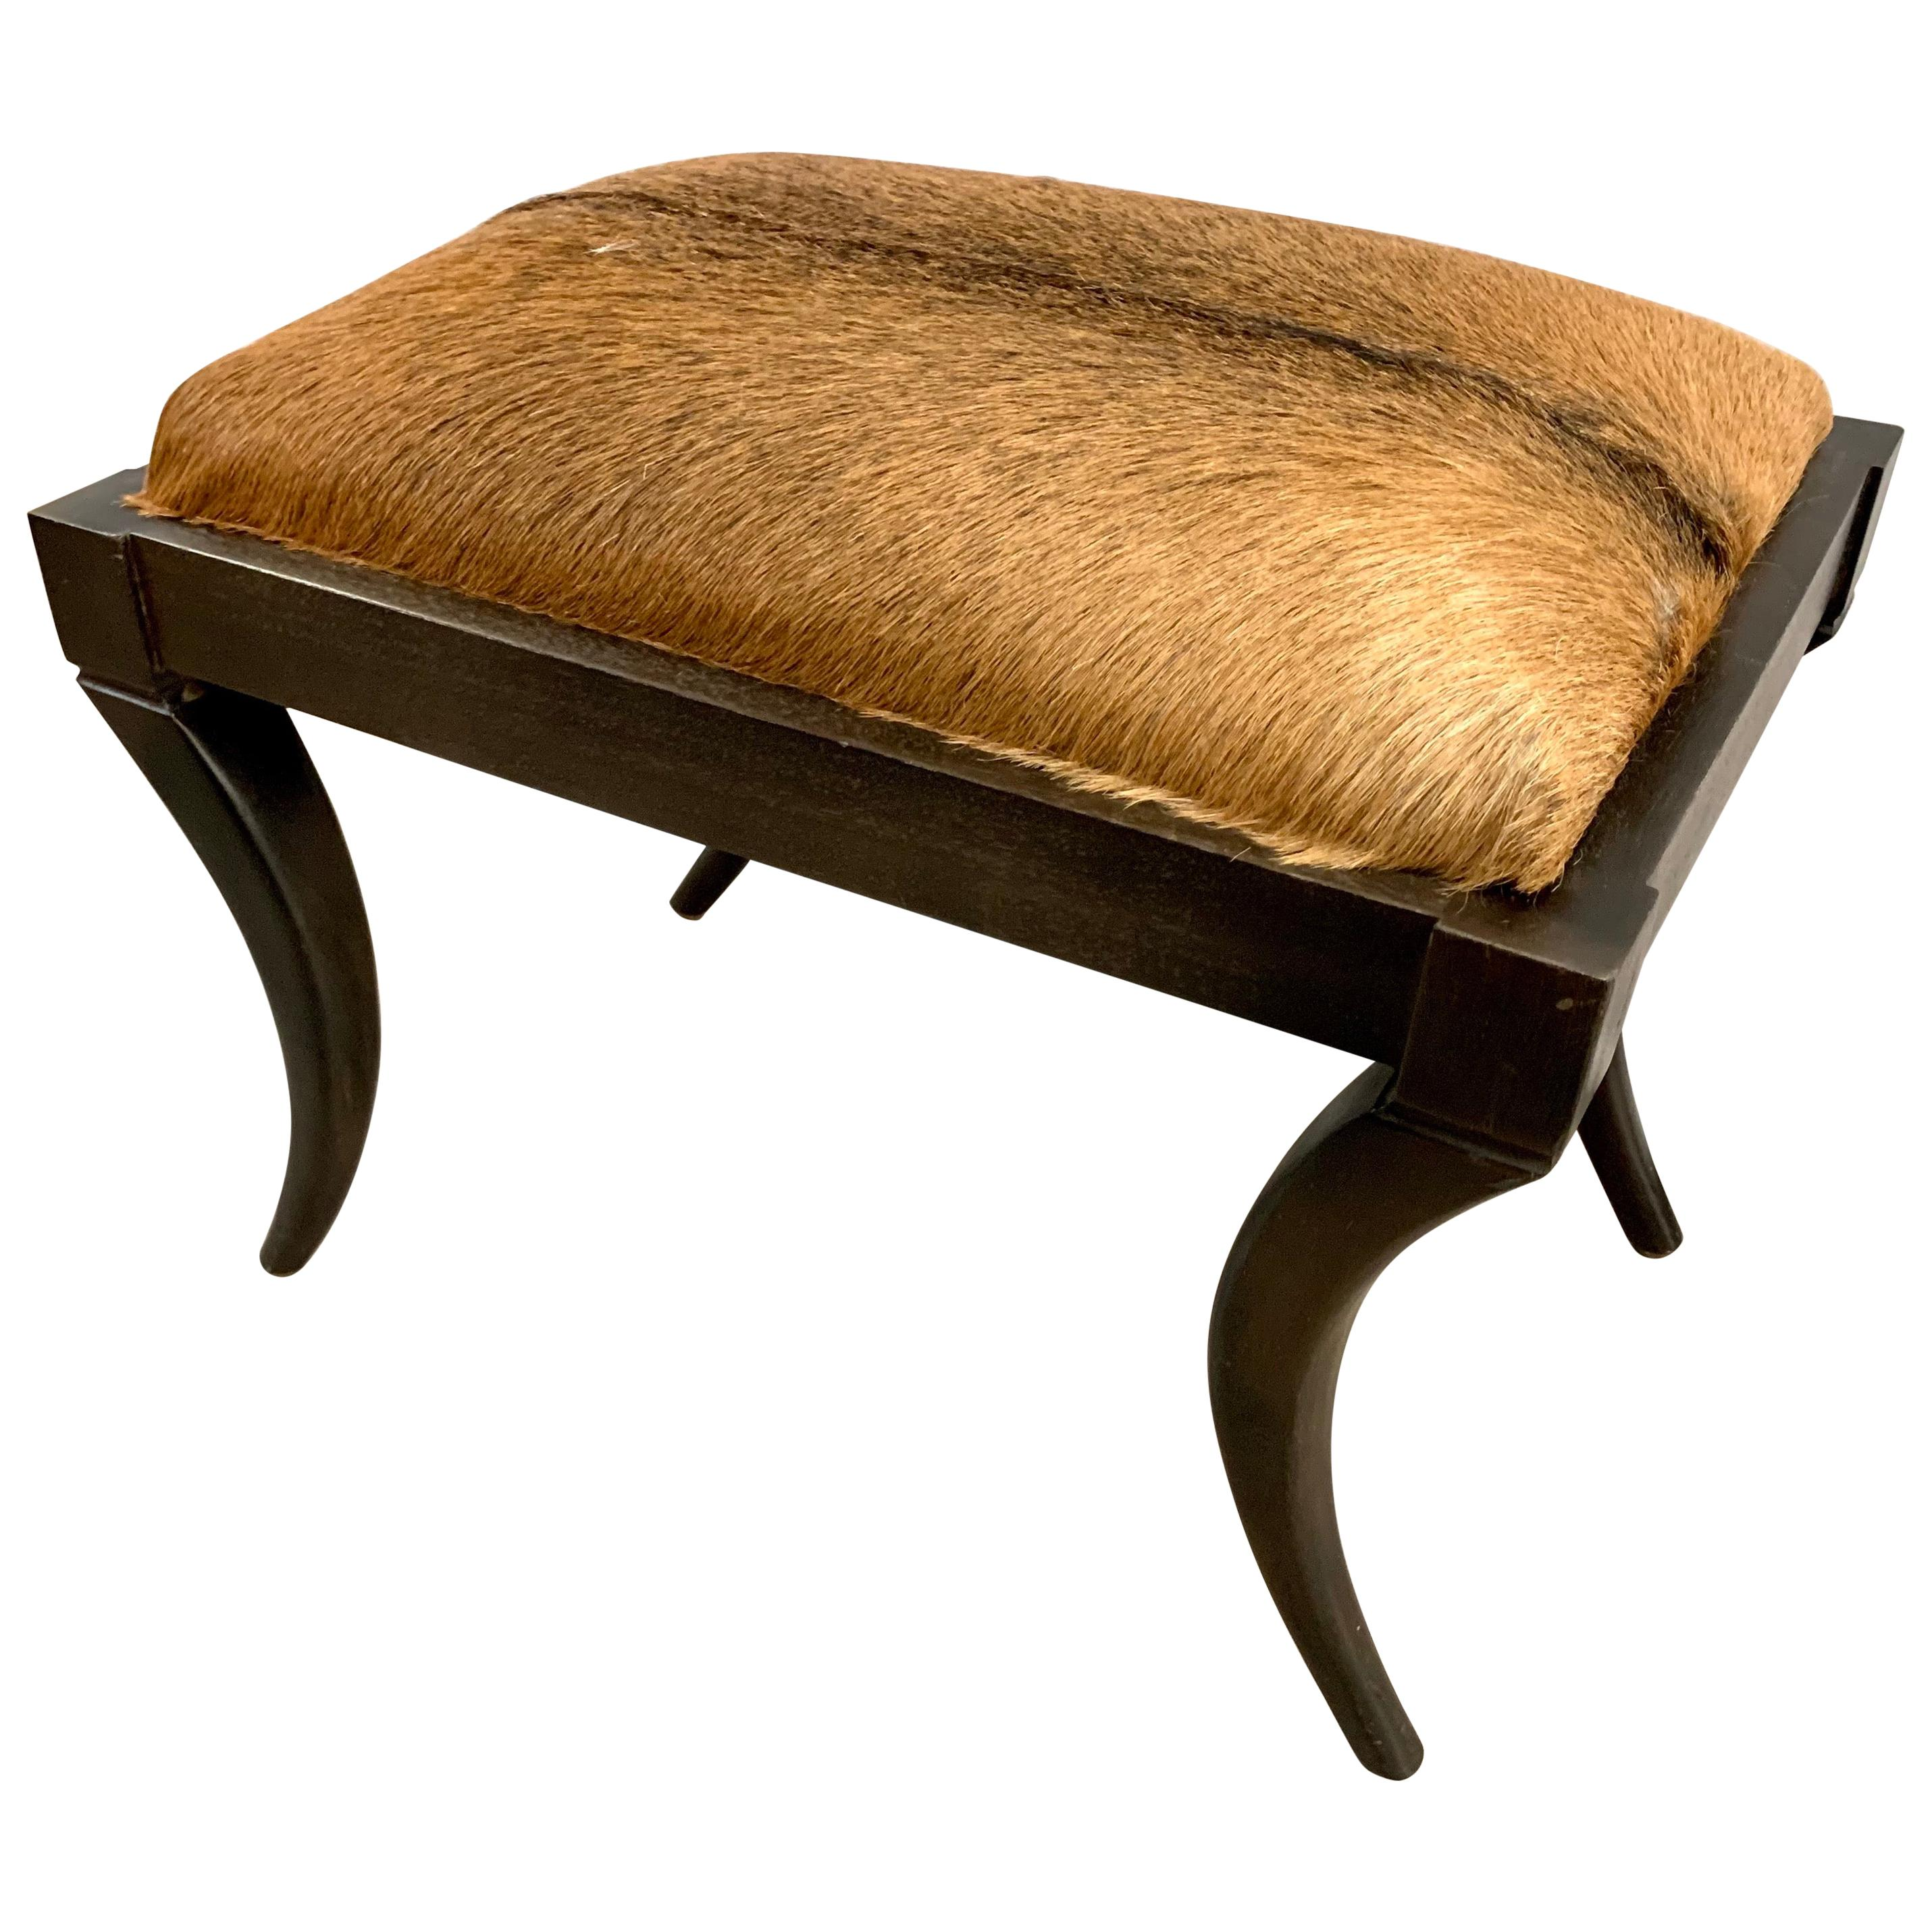 Cowhide Upholstered Bench Stool Seat